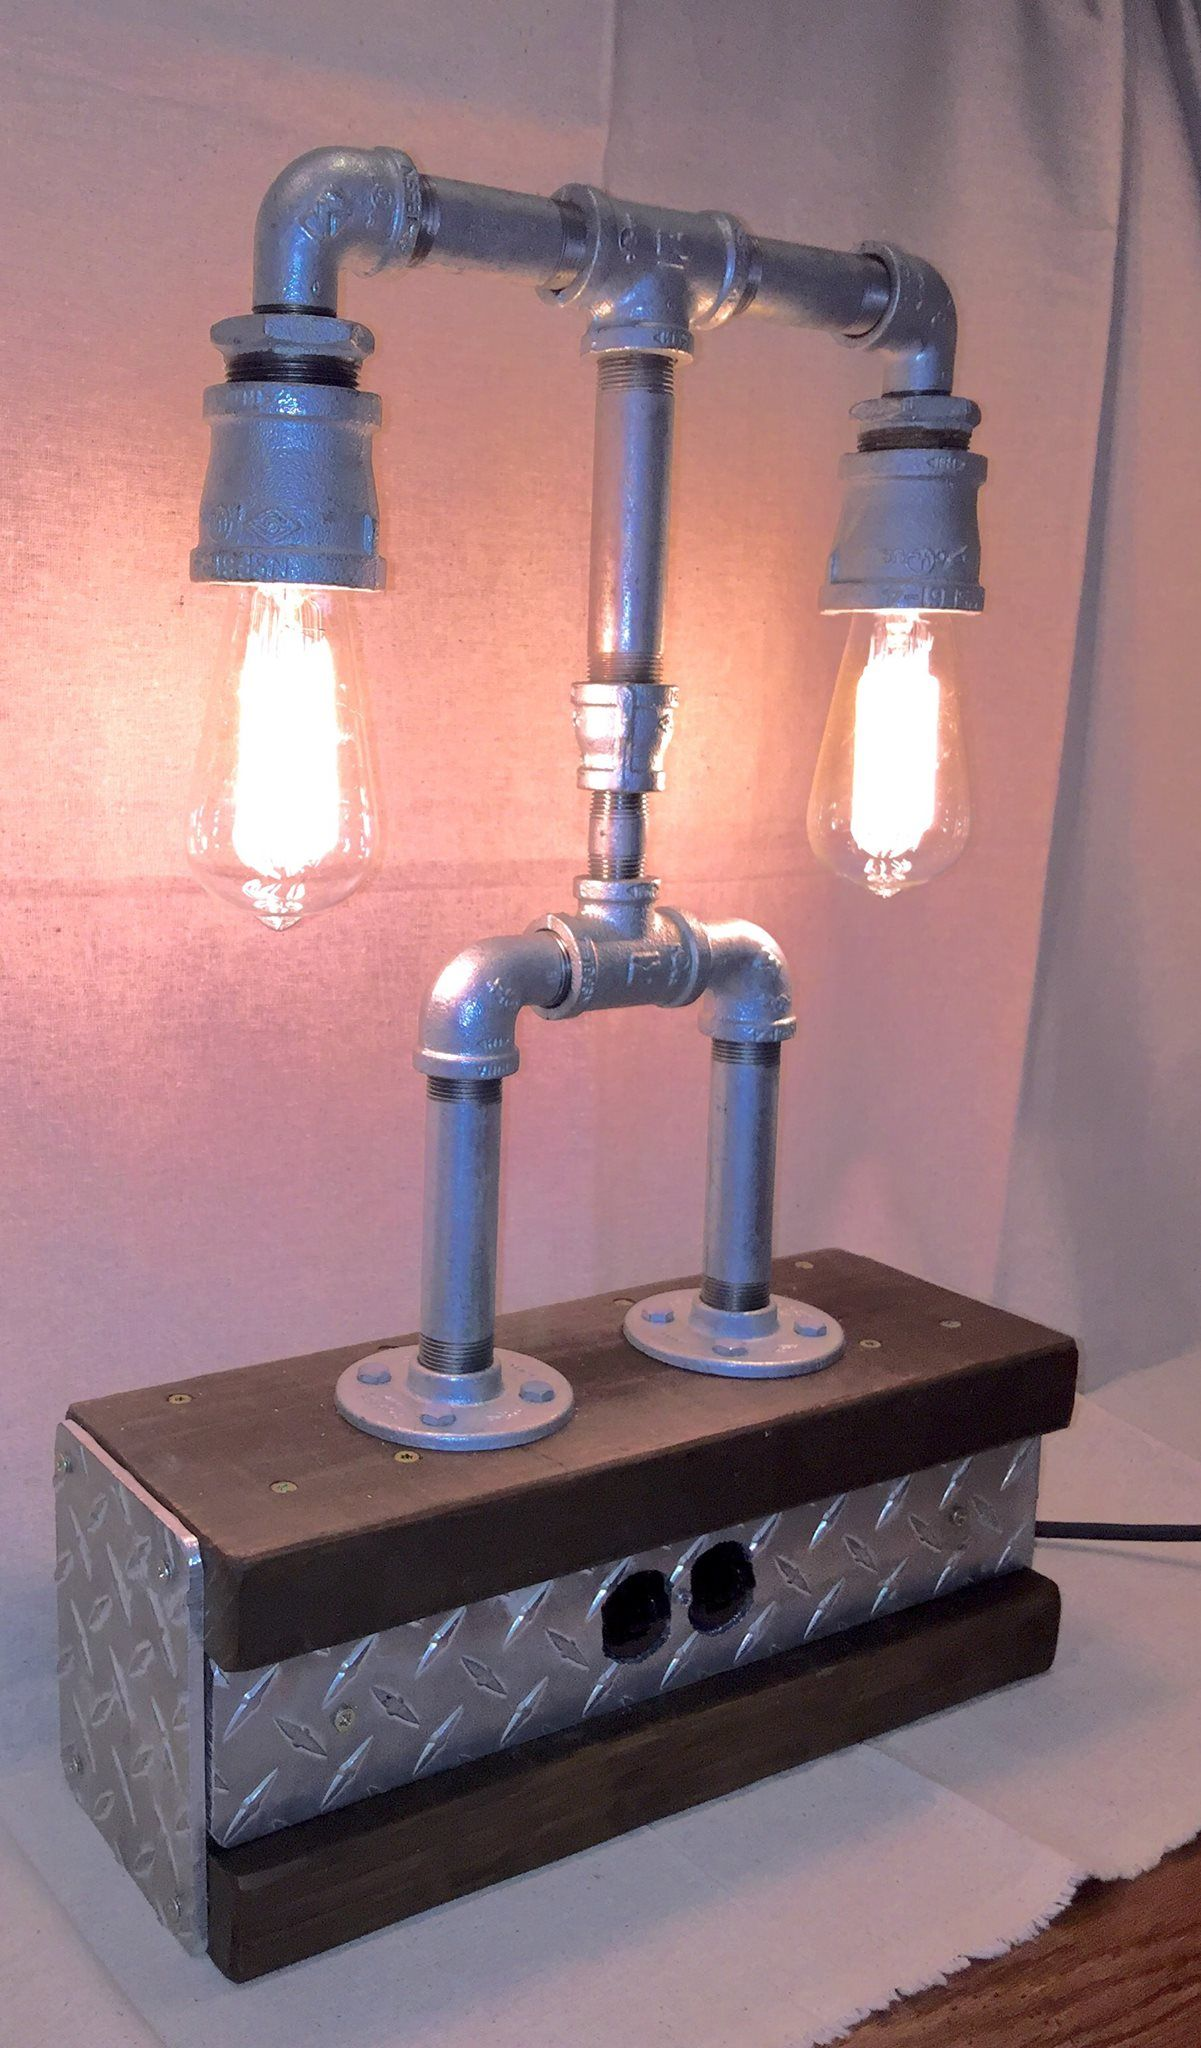 A Steampunk-inspired lamp built from galvanized plumbing parts, some ...